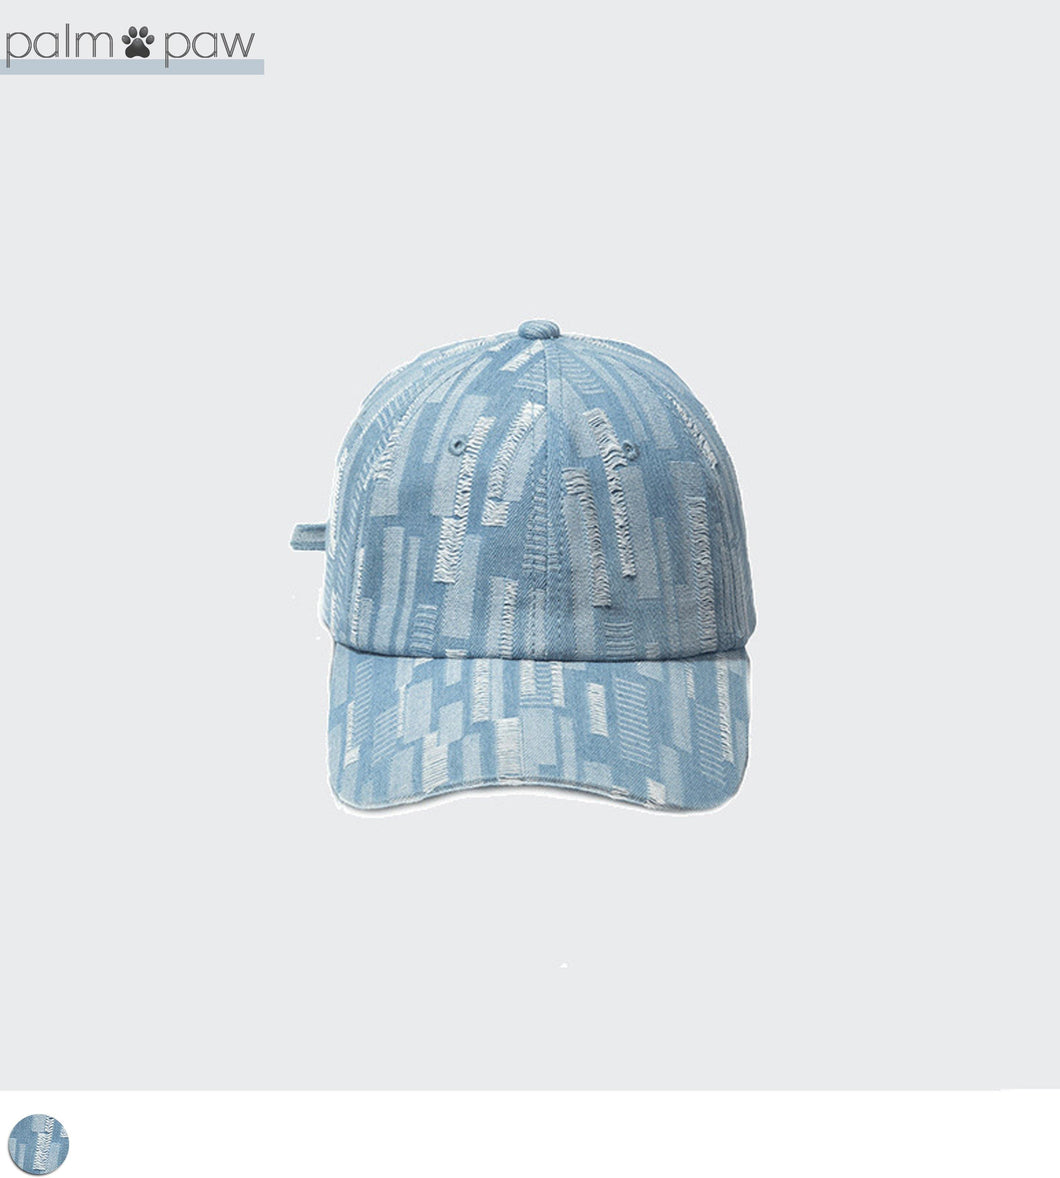 Light Wash Denim Strapback Hat Adjustable - Palm Paw